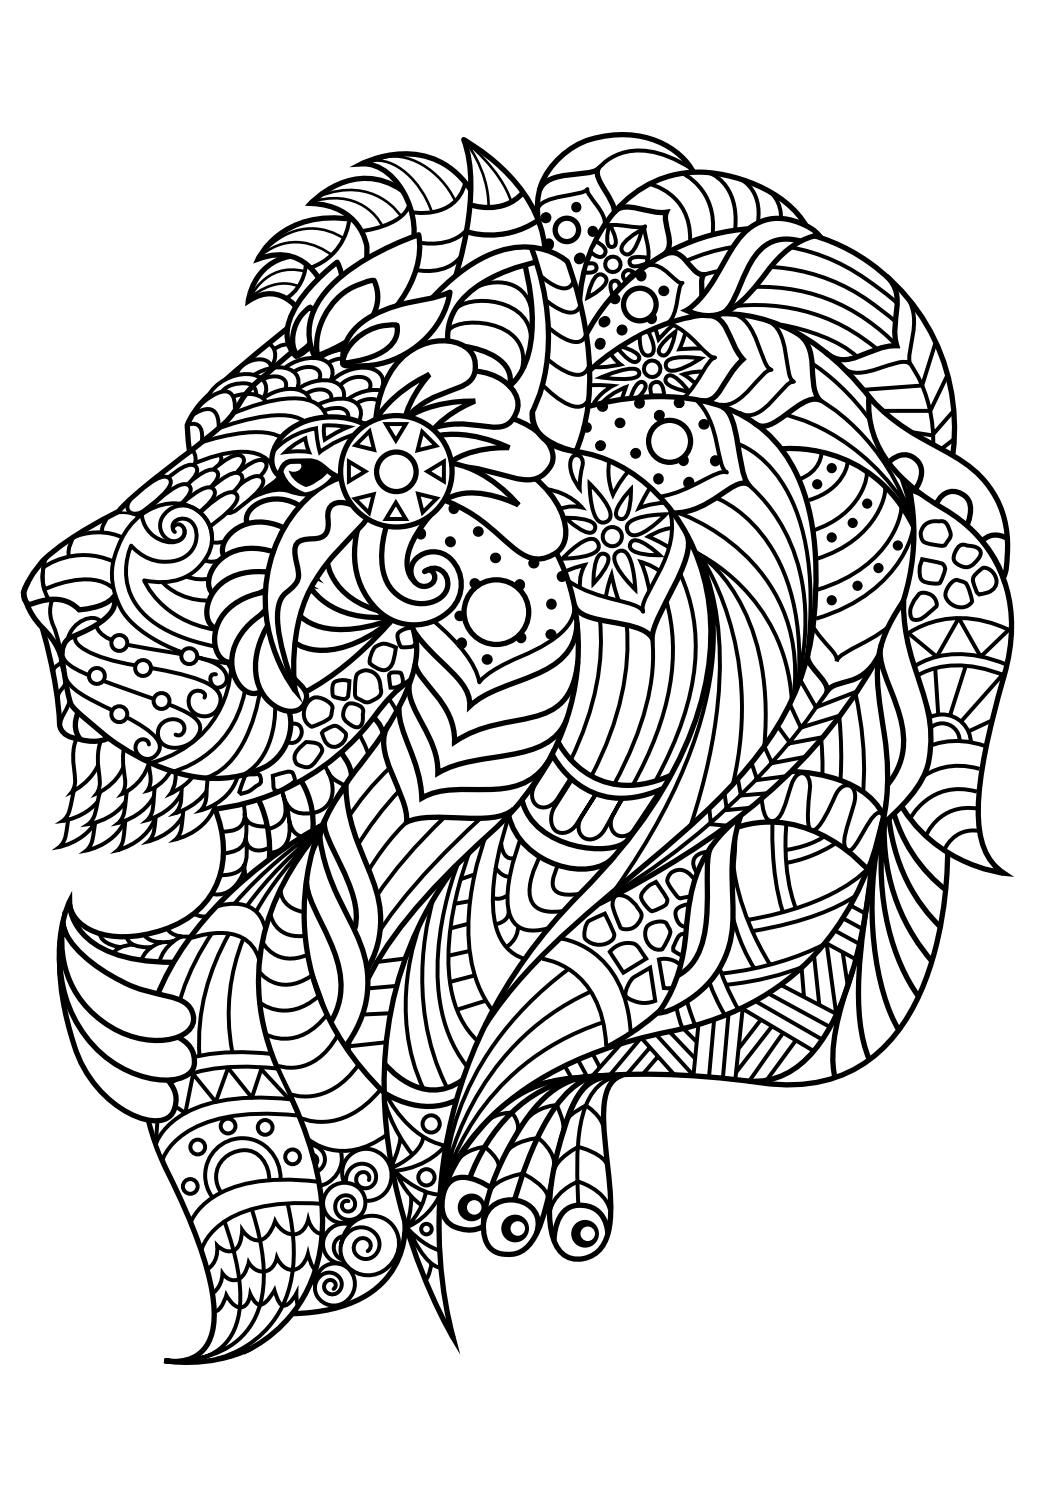 animal coloring pages pdf coloring animals lion coloring pages adult coloring pages free. Black Bedroom Furniture Sets. Home Design Ideas